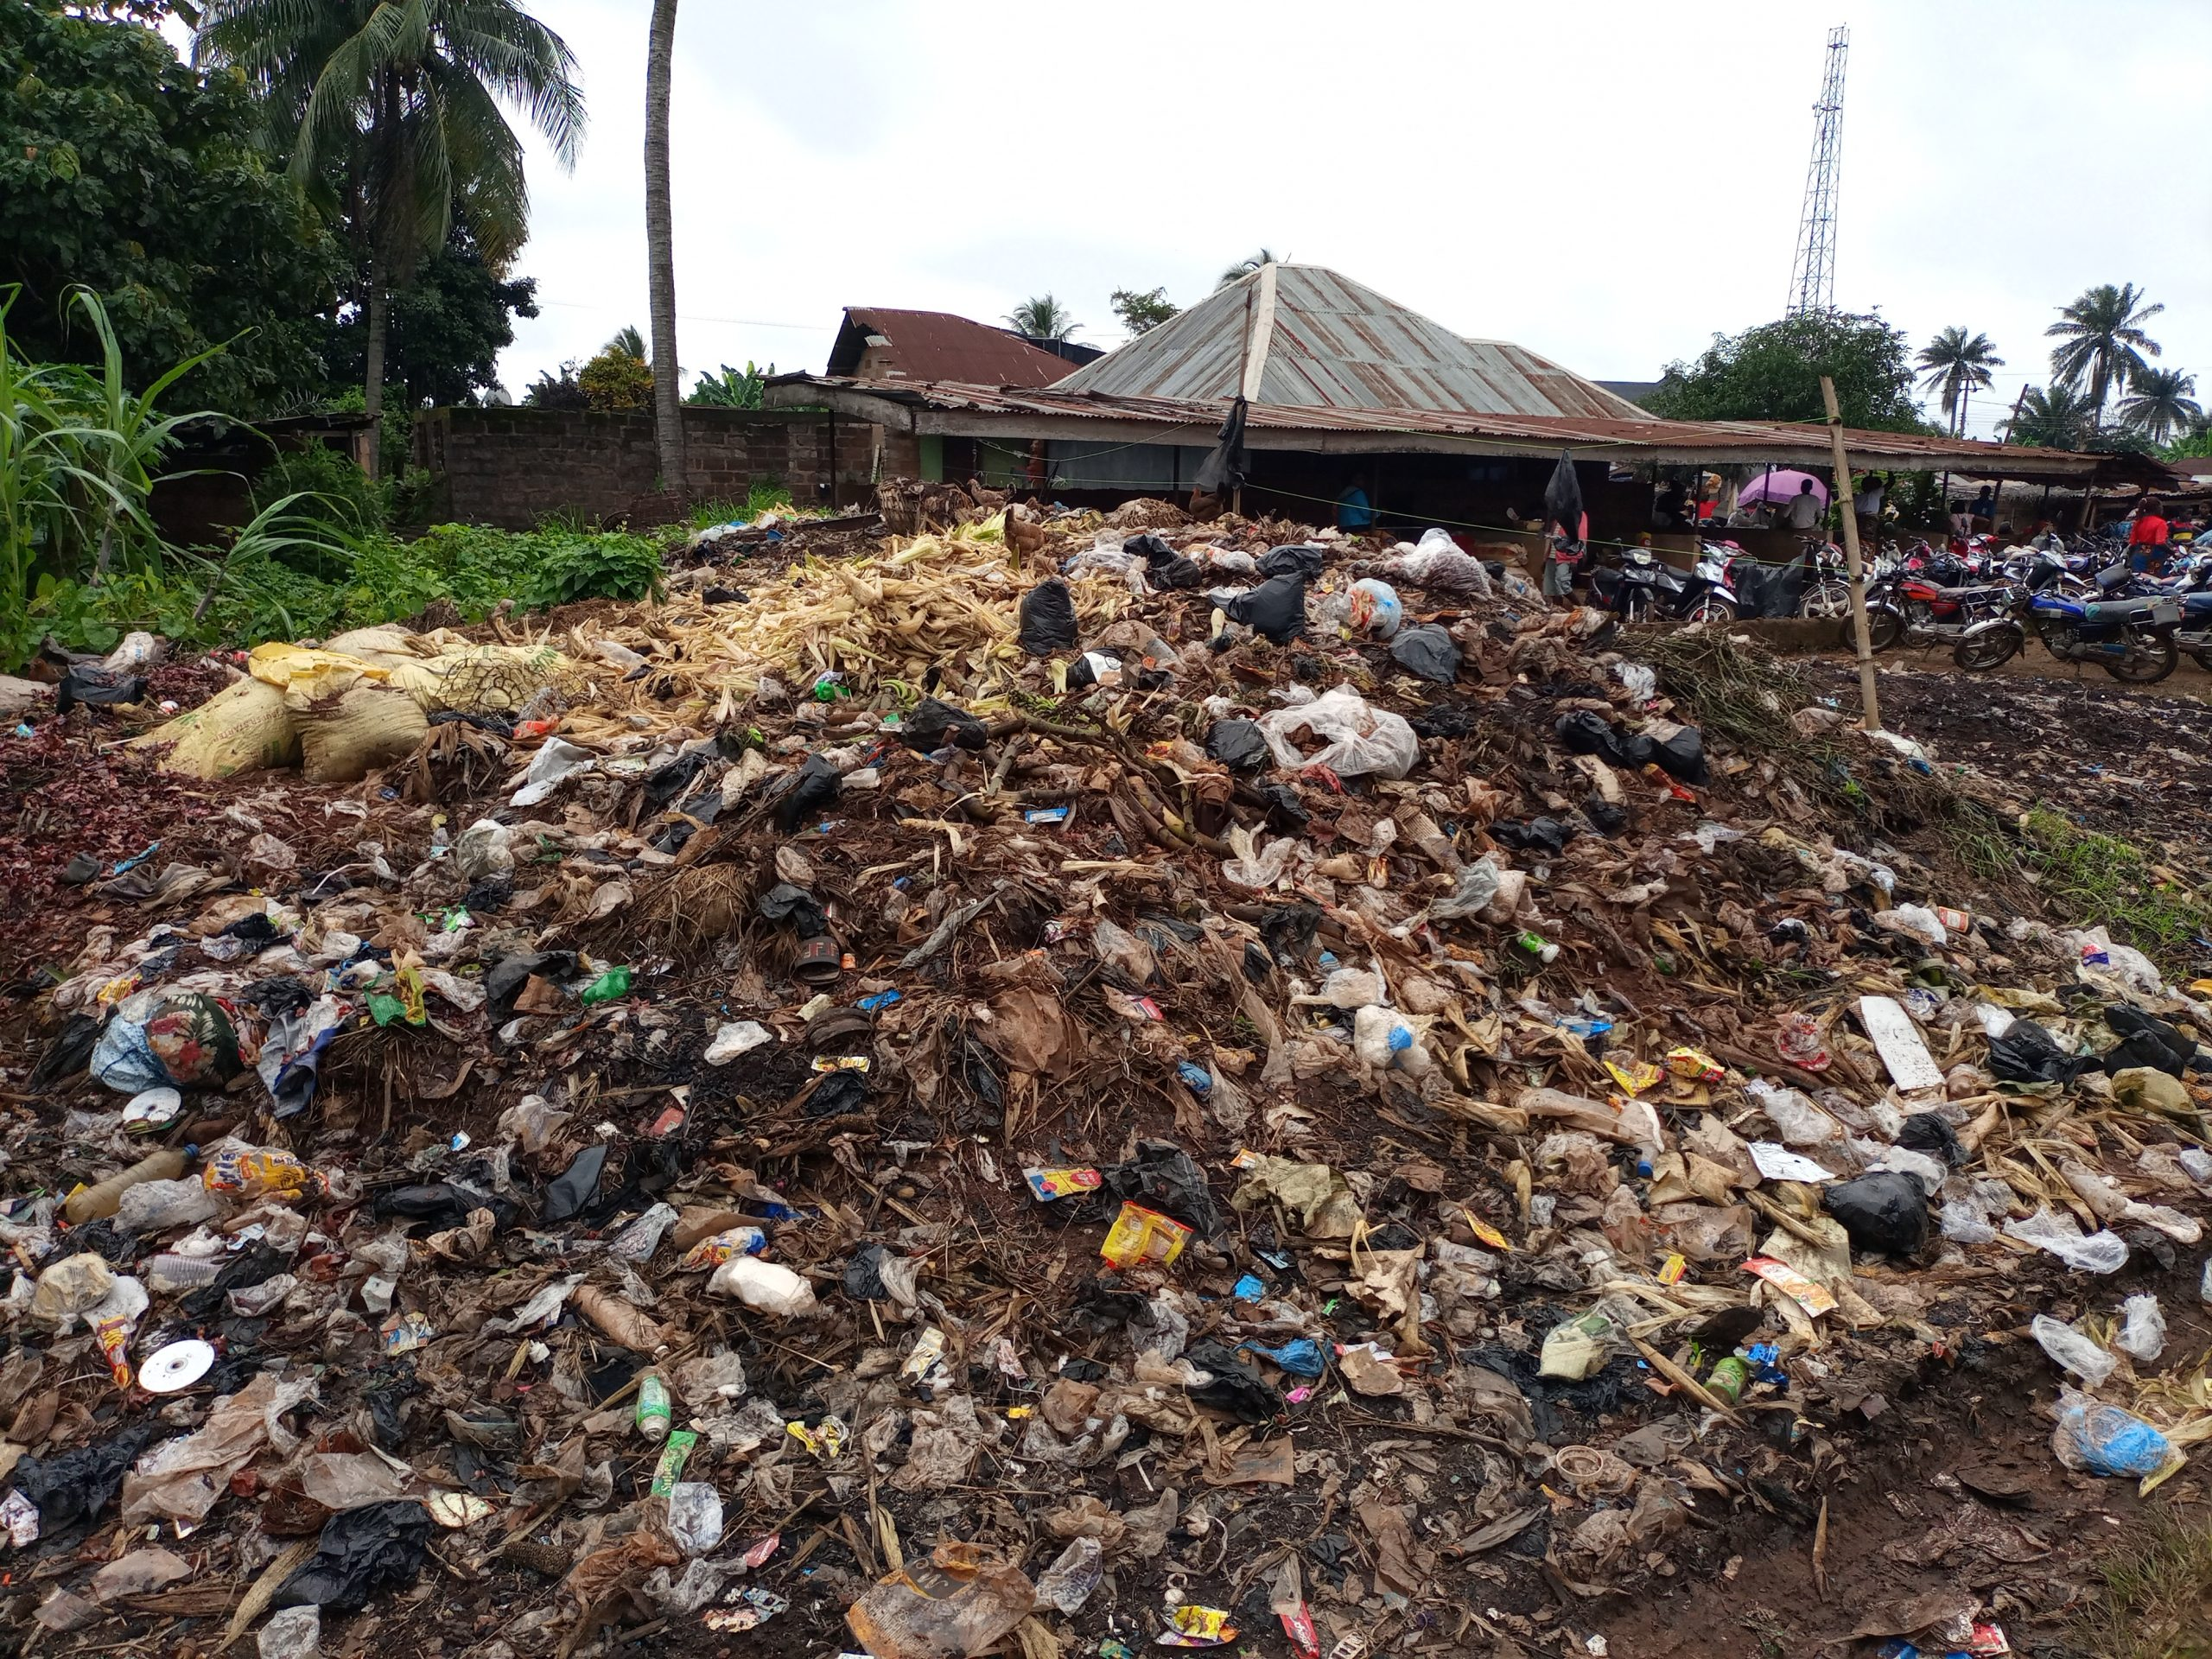 Illegal dump site at Afia-Ogbemai: Resident cries out